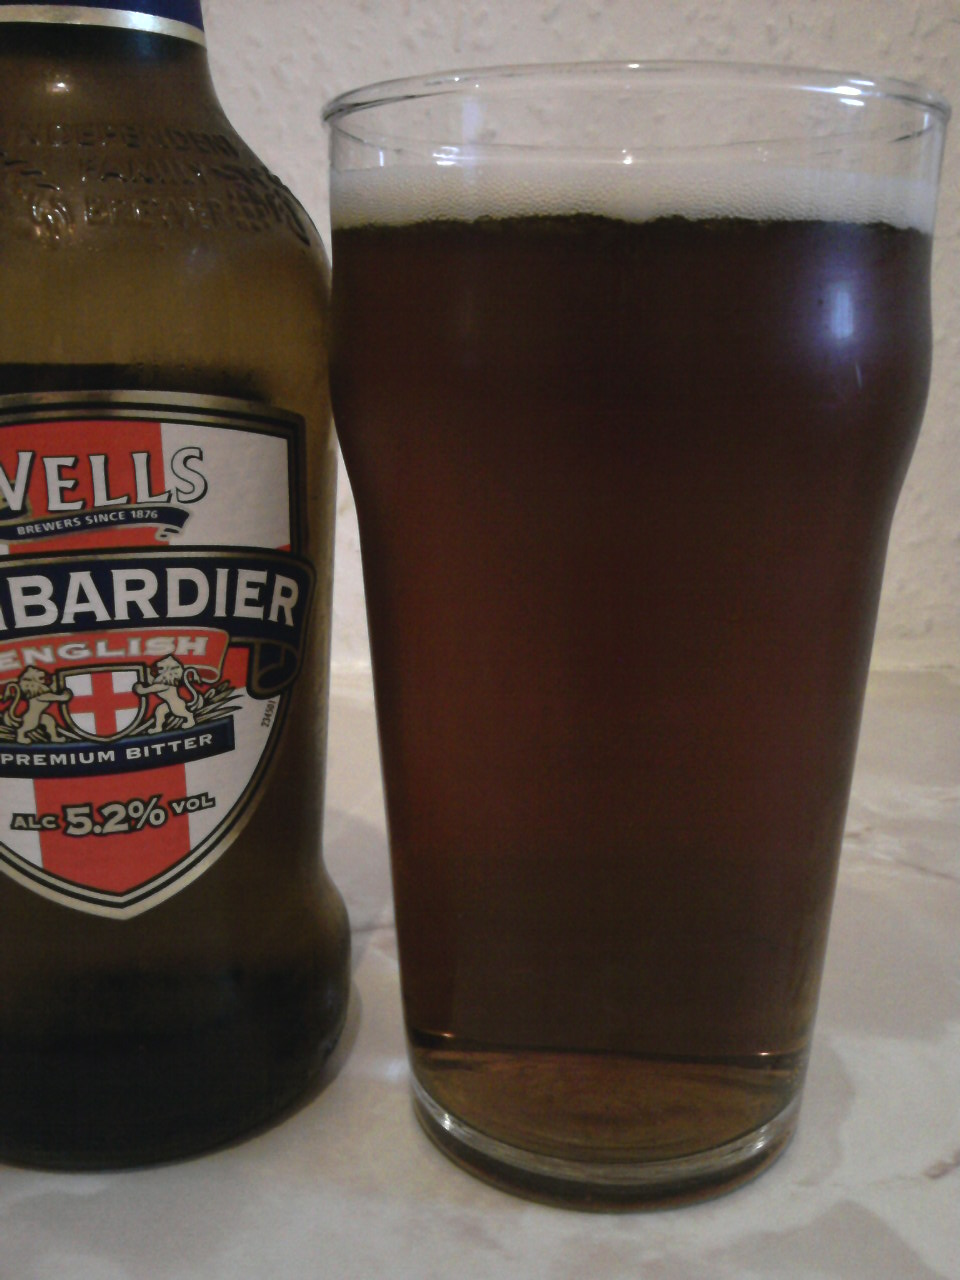 Wells Bombardier English Premium Bitter poured into a glass